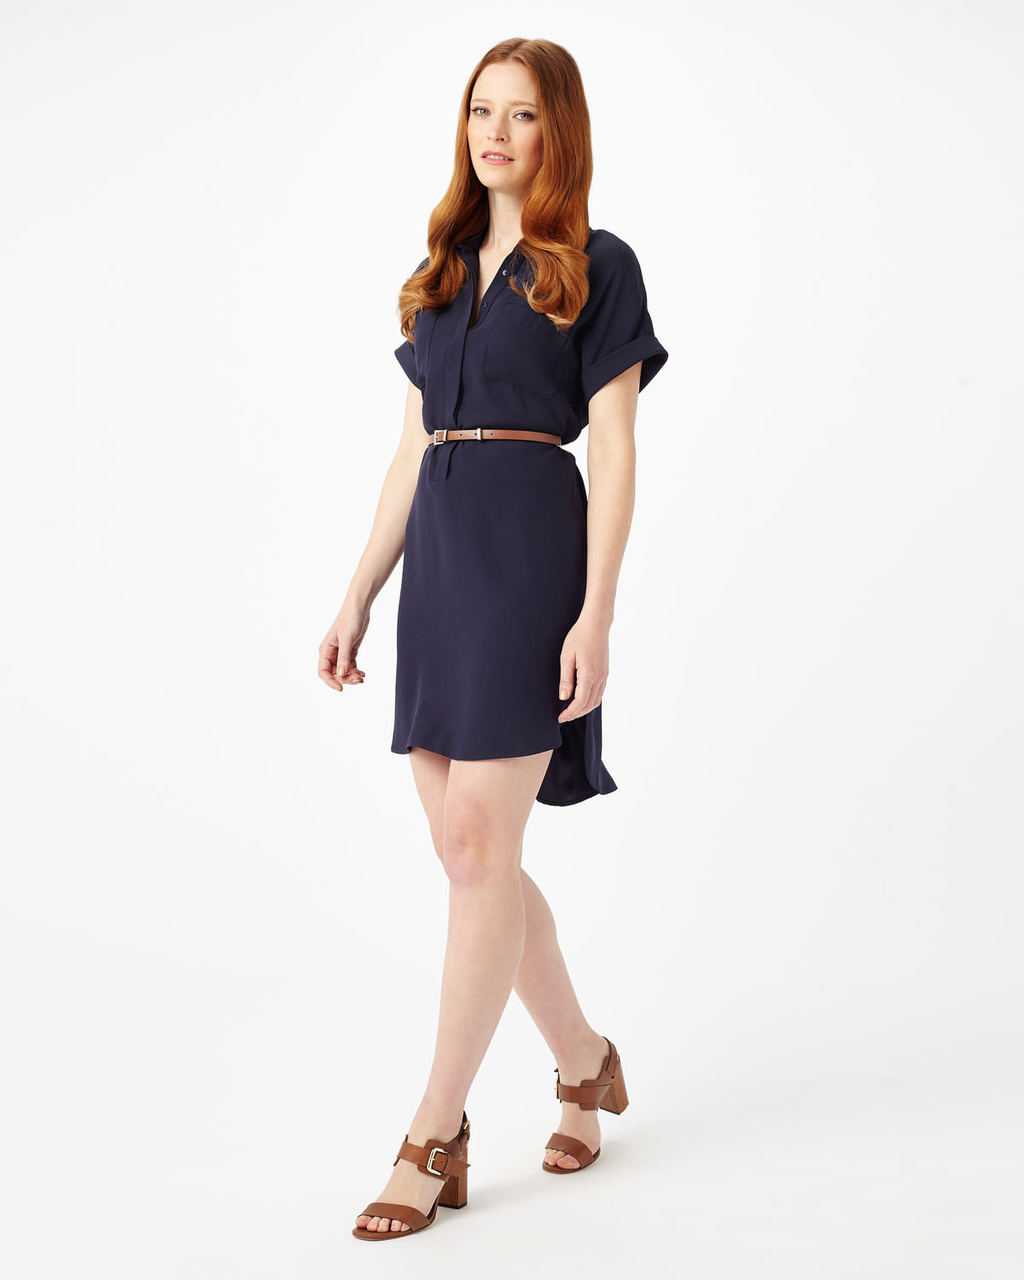 Melissa Belted Tunic - style: shift; neckline: v-neck; pattern: plain; waist detail: belted waist/tie at waist/drawstring; predominant colour: navy; occasions: casual; length: just above the knee; fit: body skimming; sleeve length: short sleeve; sleeve style: standard; pattern type: fabric; texture group: other - light to midweight; fibres: viscose/rayon - mix; season: s/s 2016; wardrobe: basic